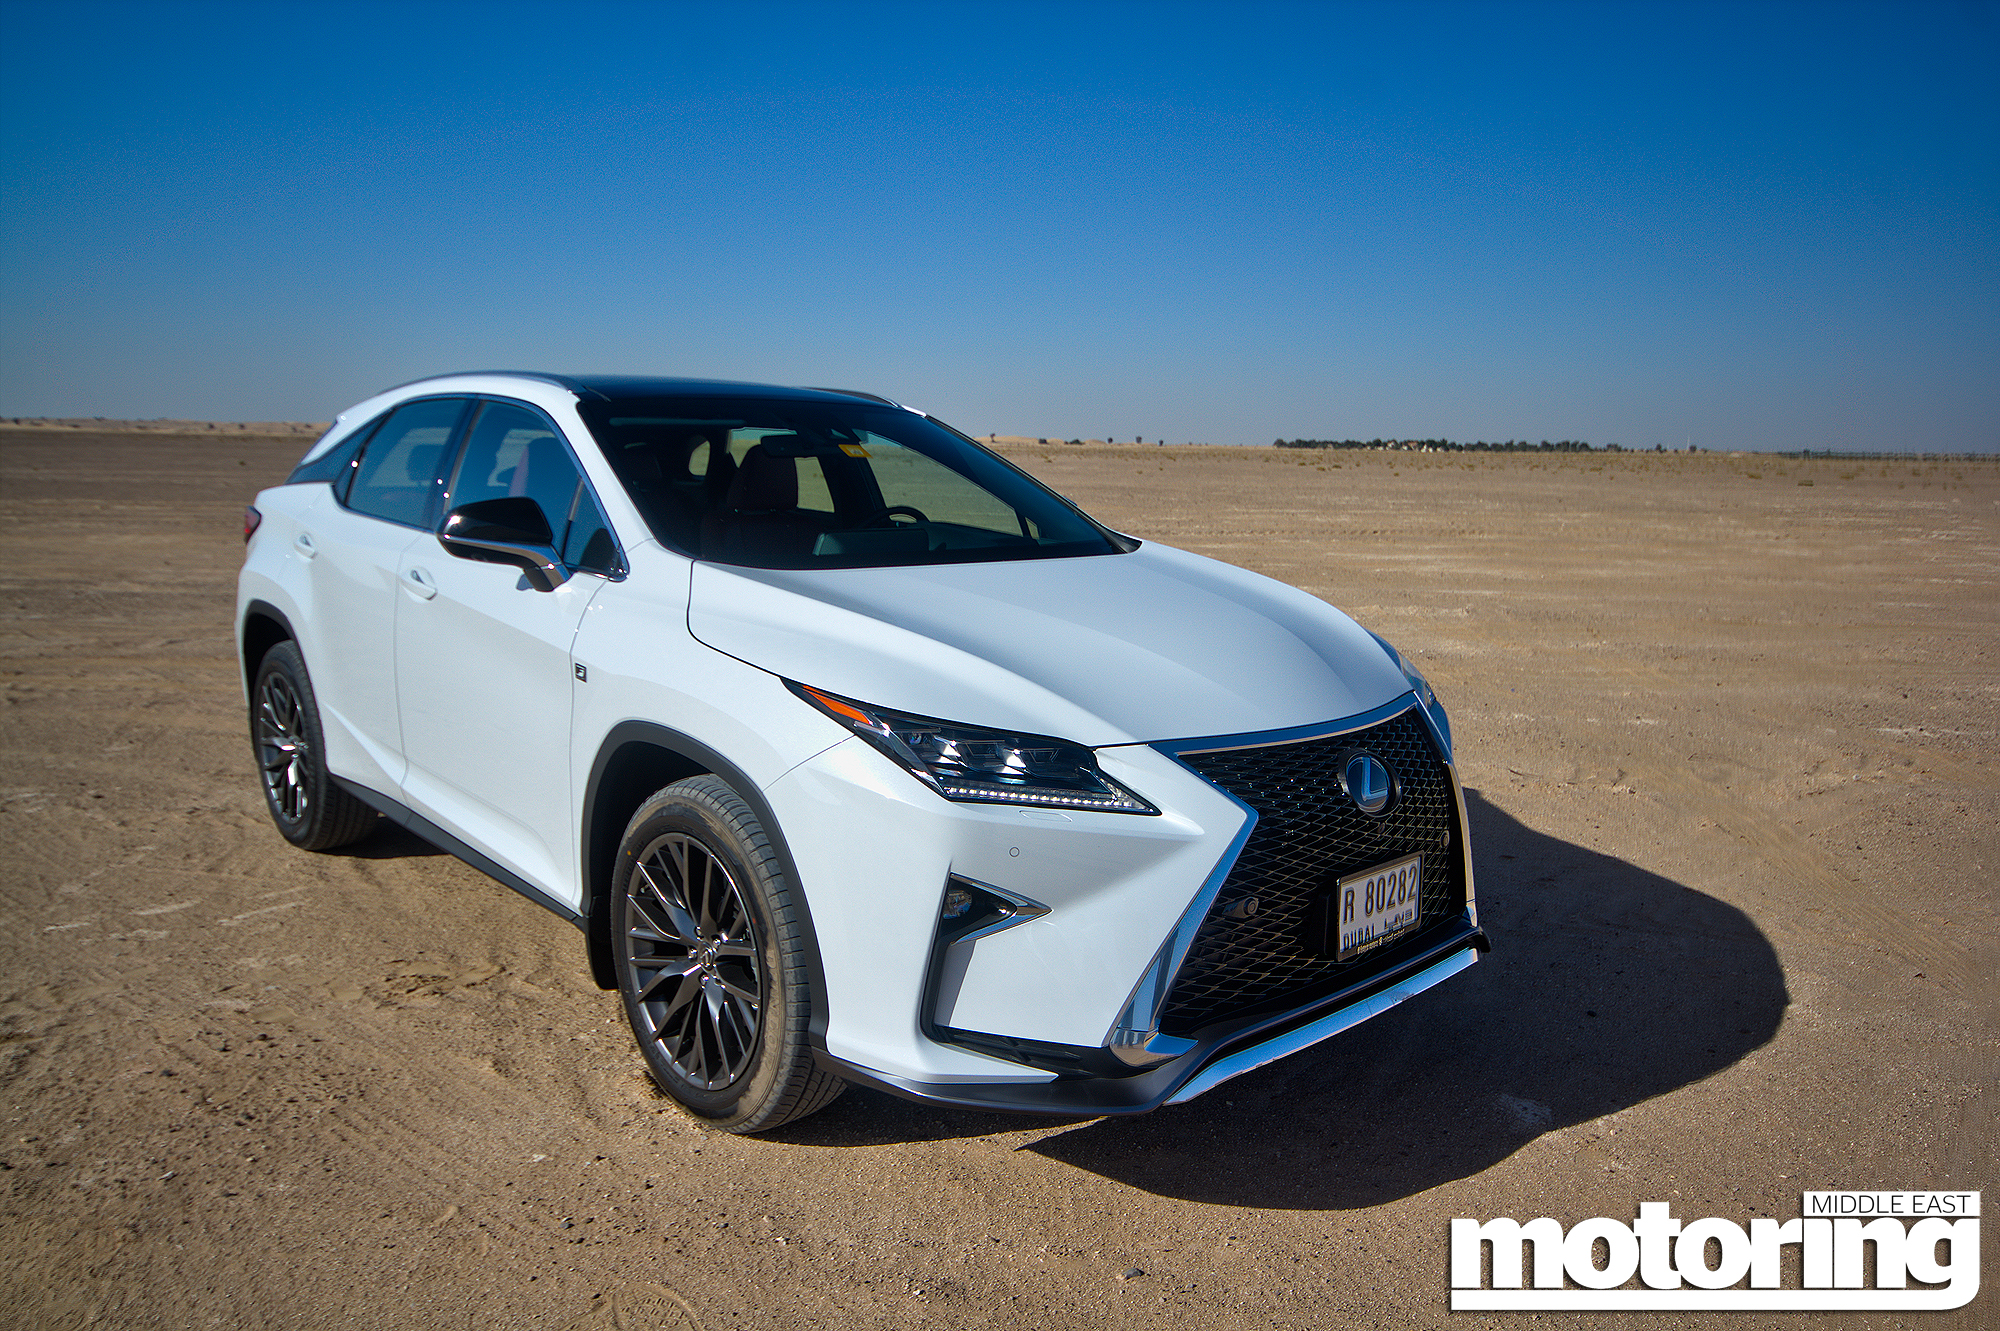 2016 Lexus RX350Motoring Middle East: Car news, Reviews and Buying guides